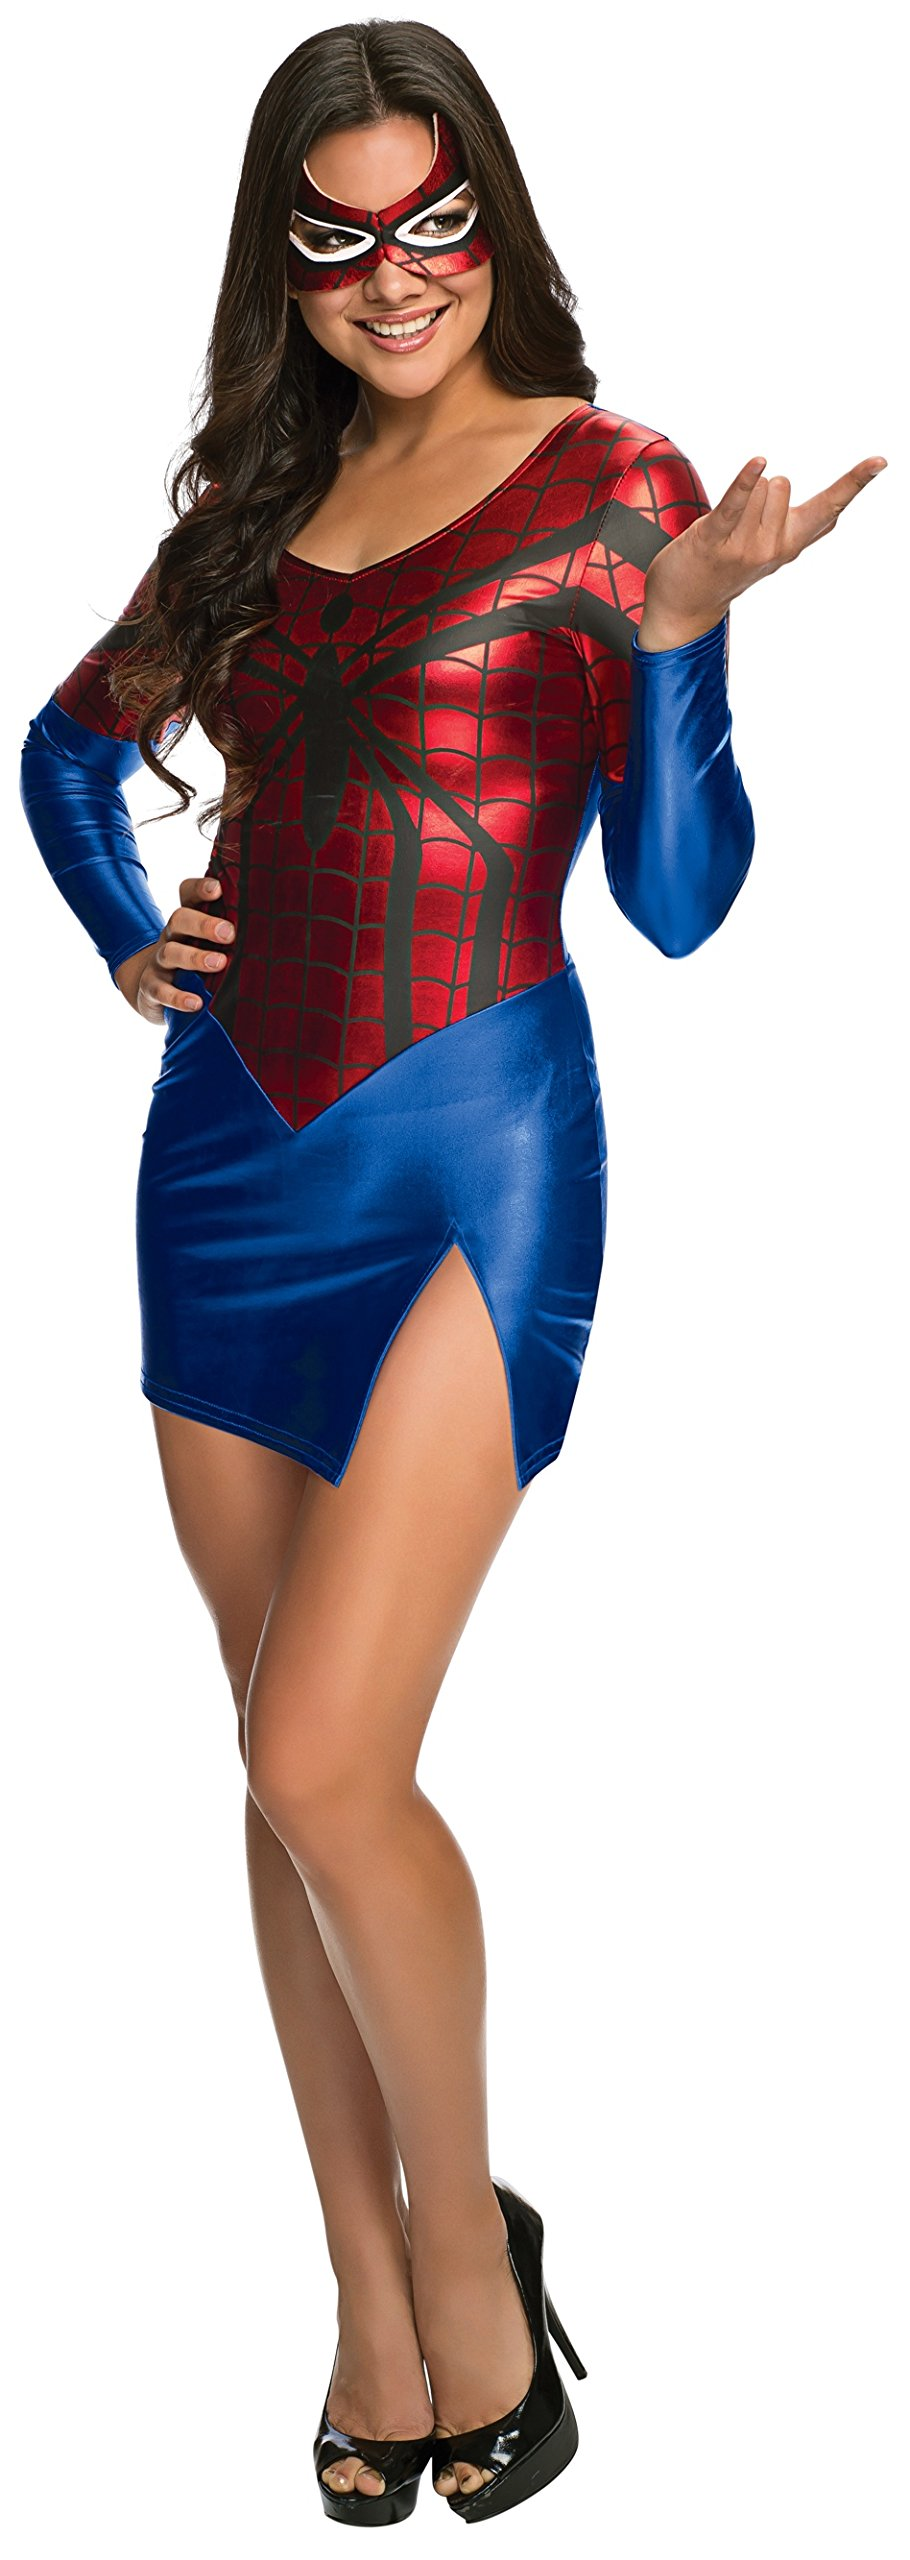 - 71 2BPnEIbdmL - Marvel Secret Wishes Women's Universe Spidergirl Costume Dress and Mask